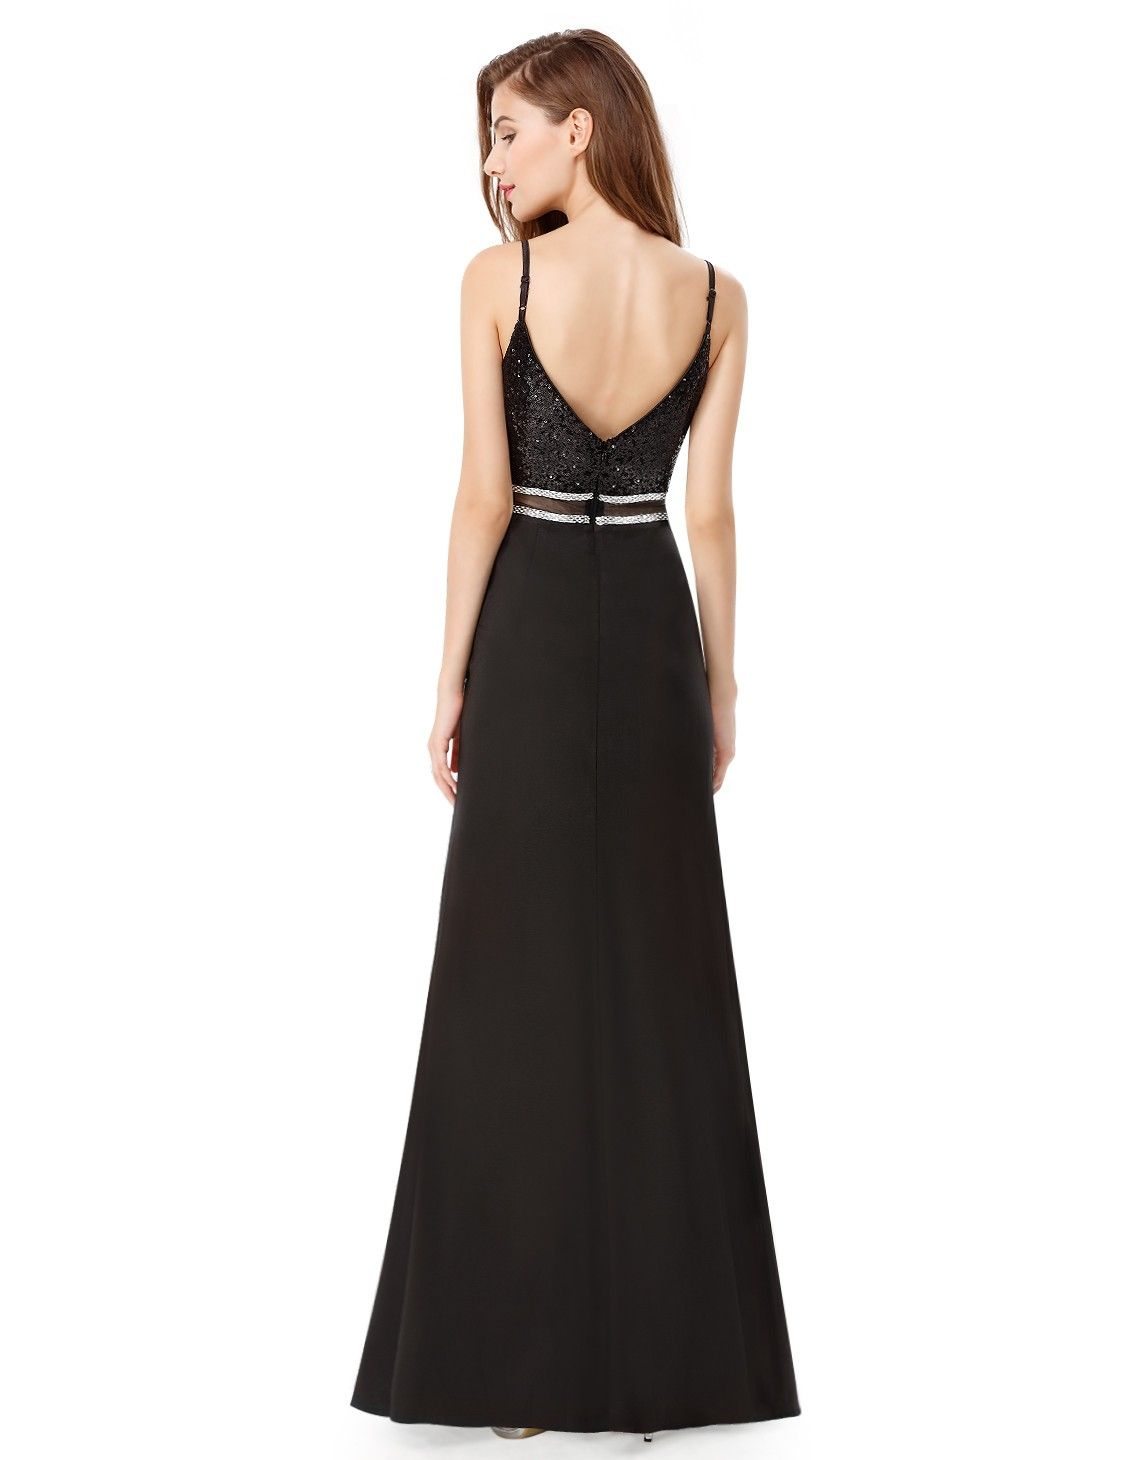 0a793890623 Sleeveless V-Neck Long Prom Dress with Sequins and Sheer Panel